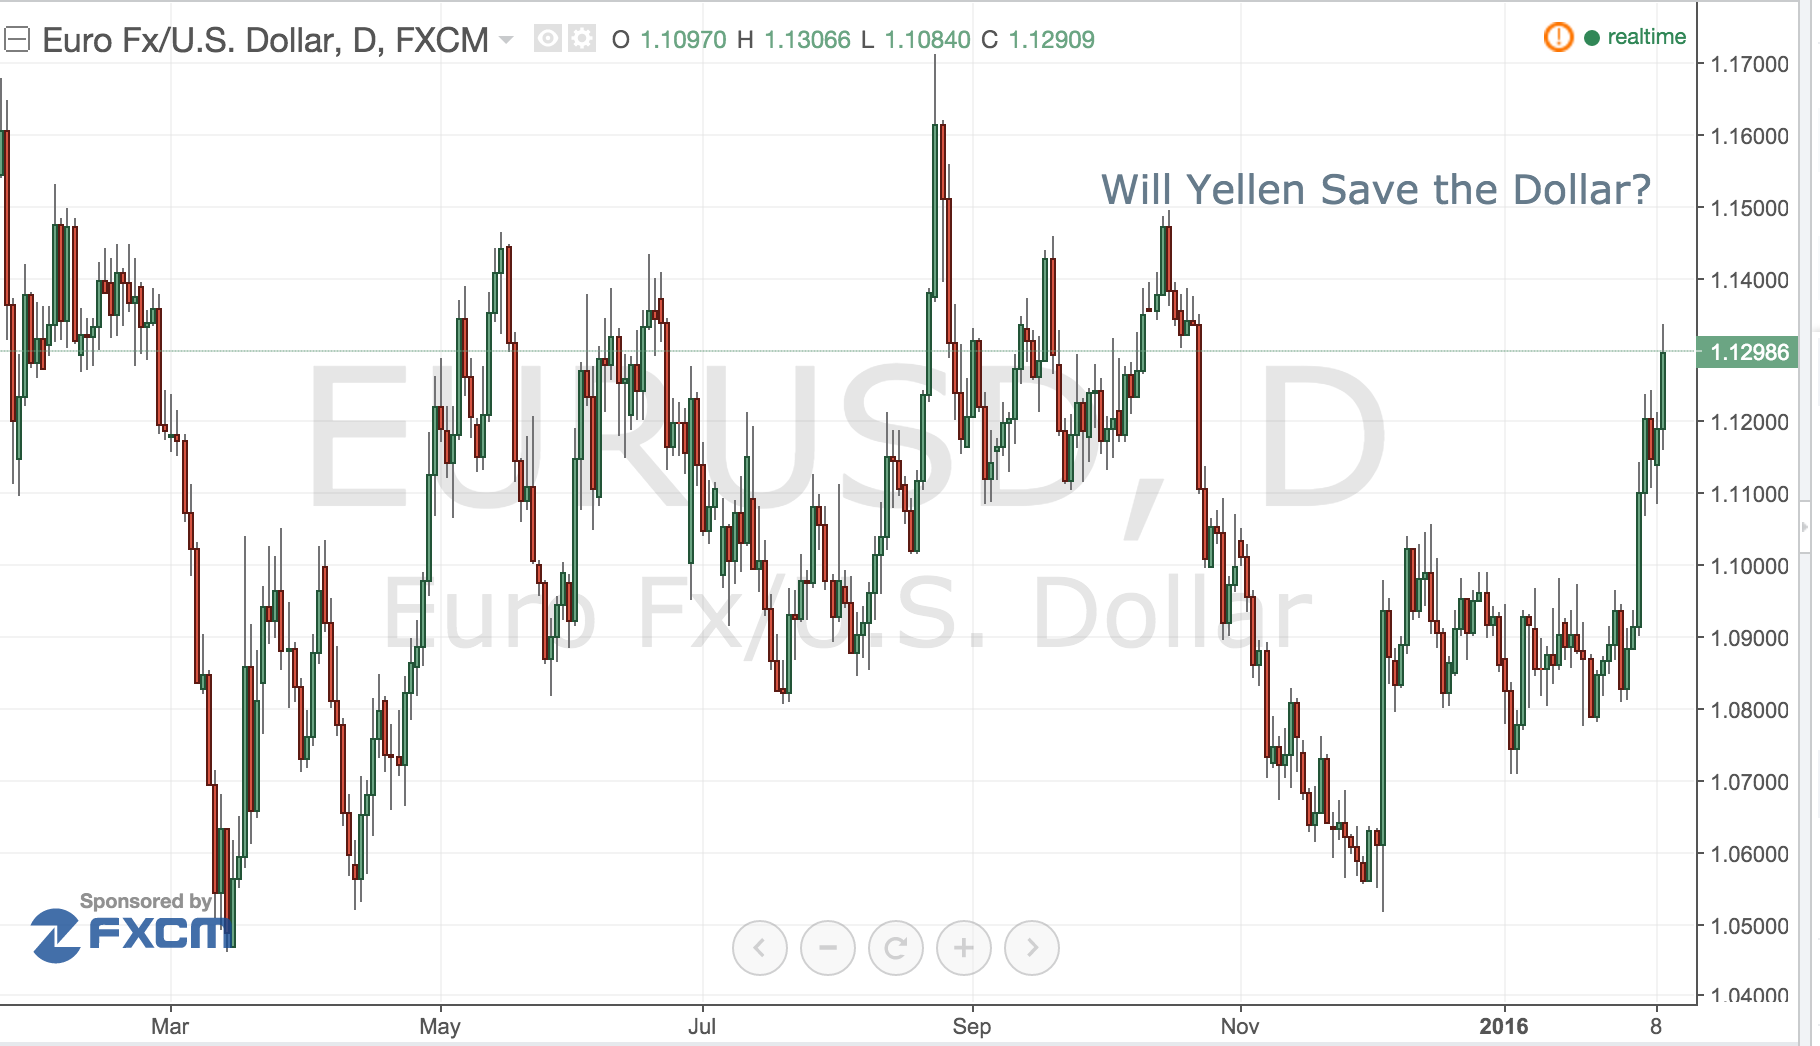 Will Yellen Save The Dollar?